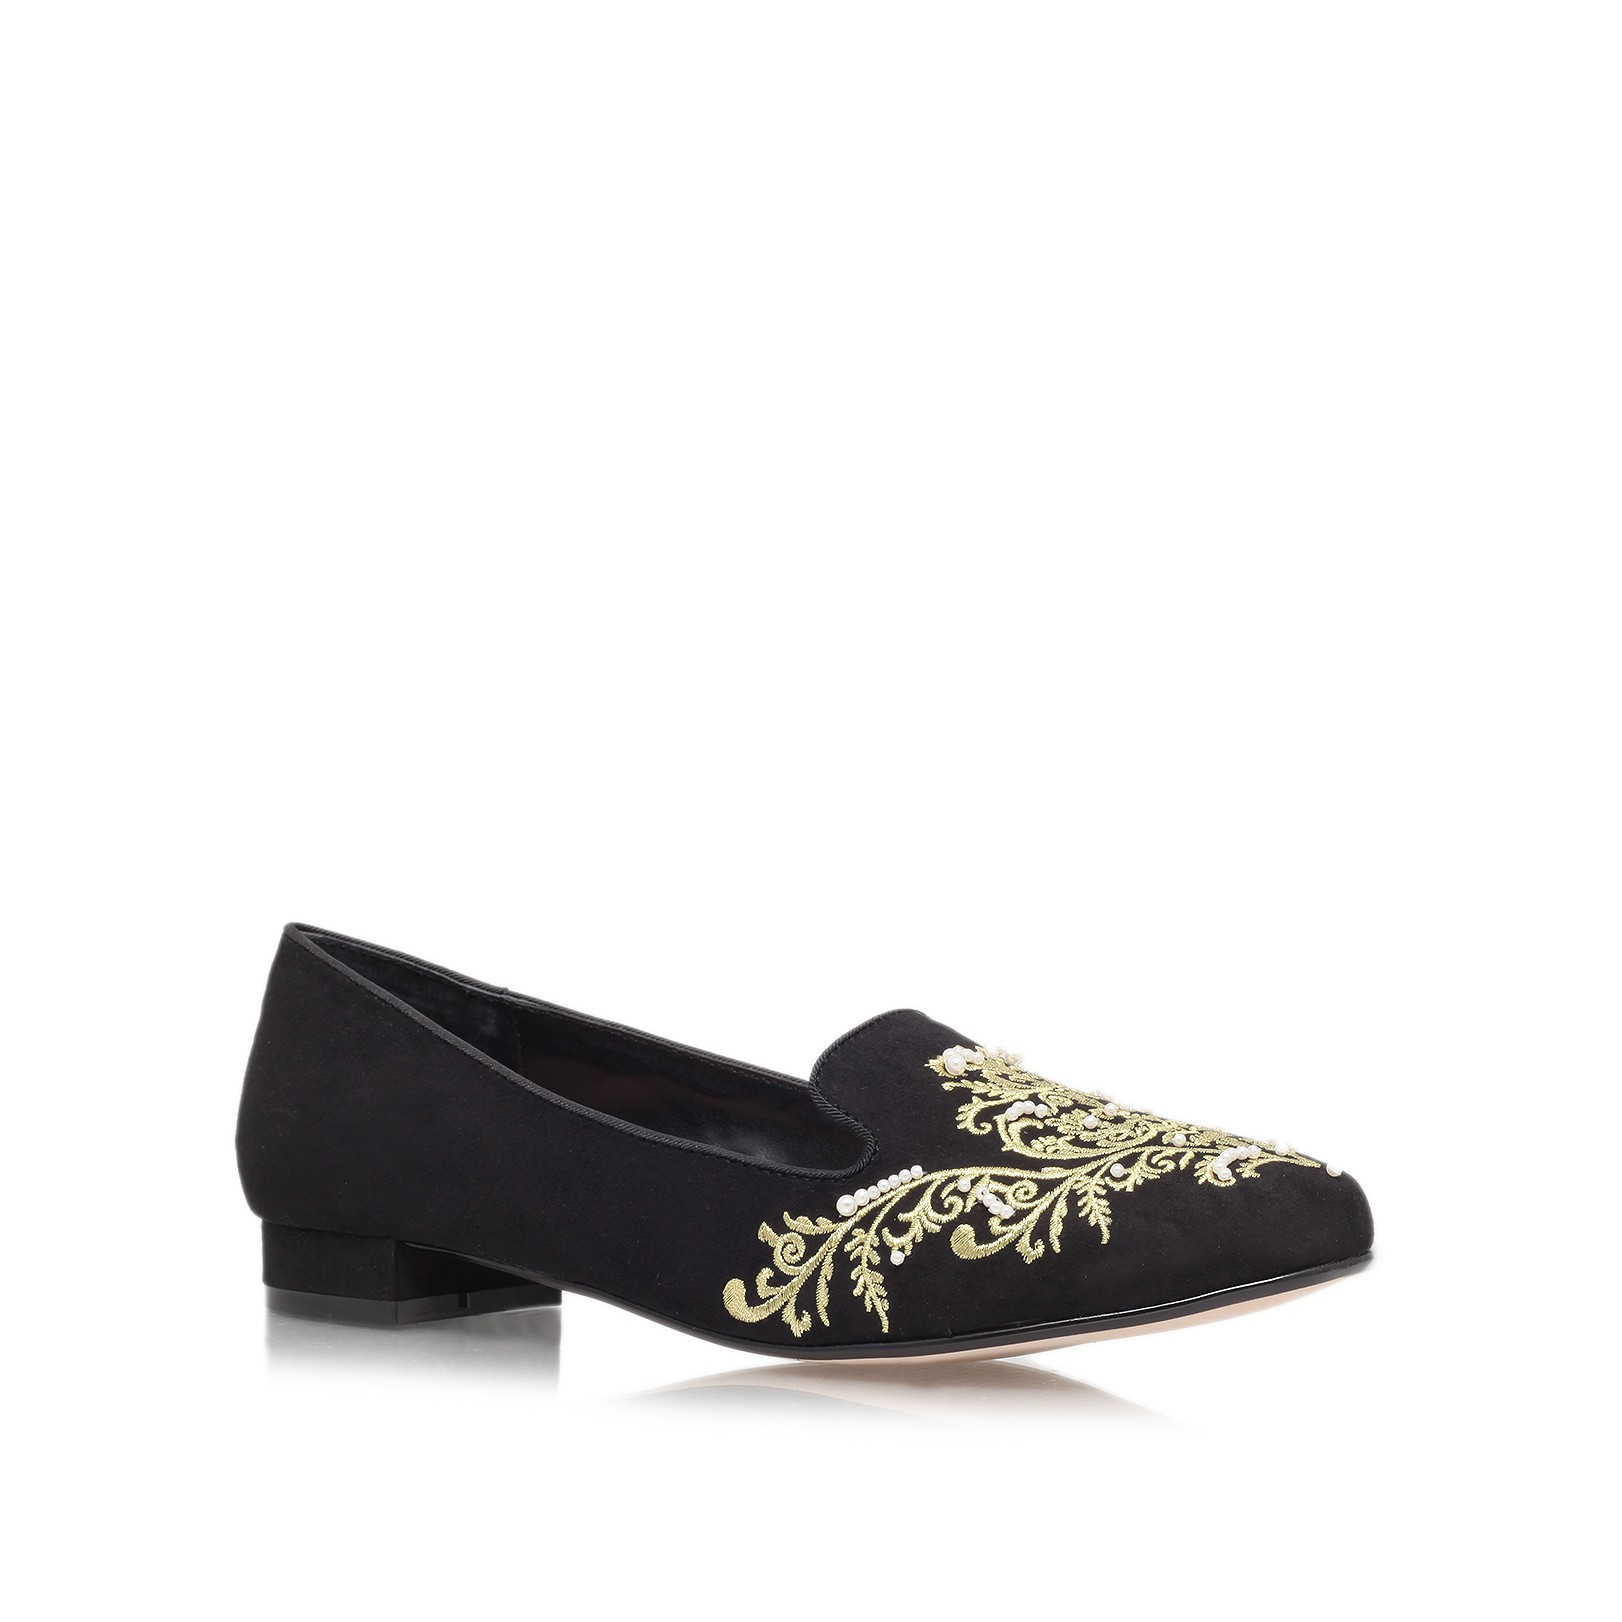 Kurt Geiger | LIKE Black Low Heel Loafers by Carvela Kurt Geiger